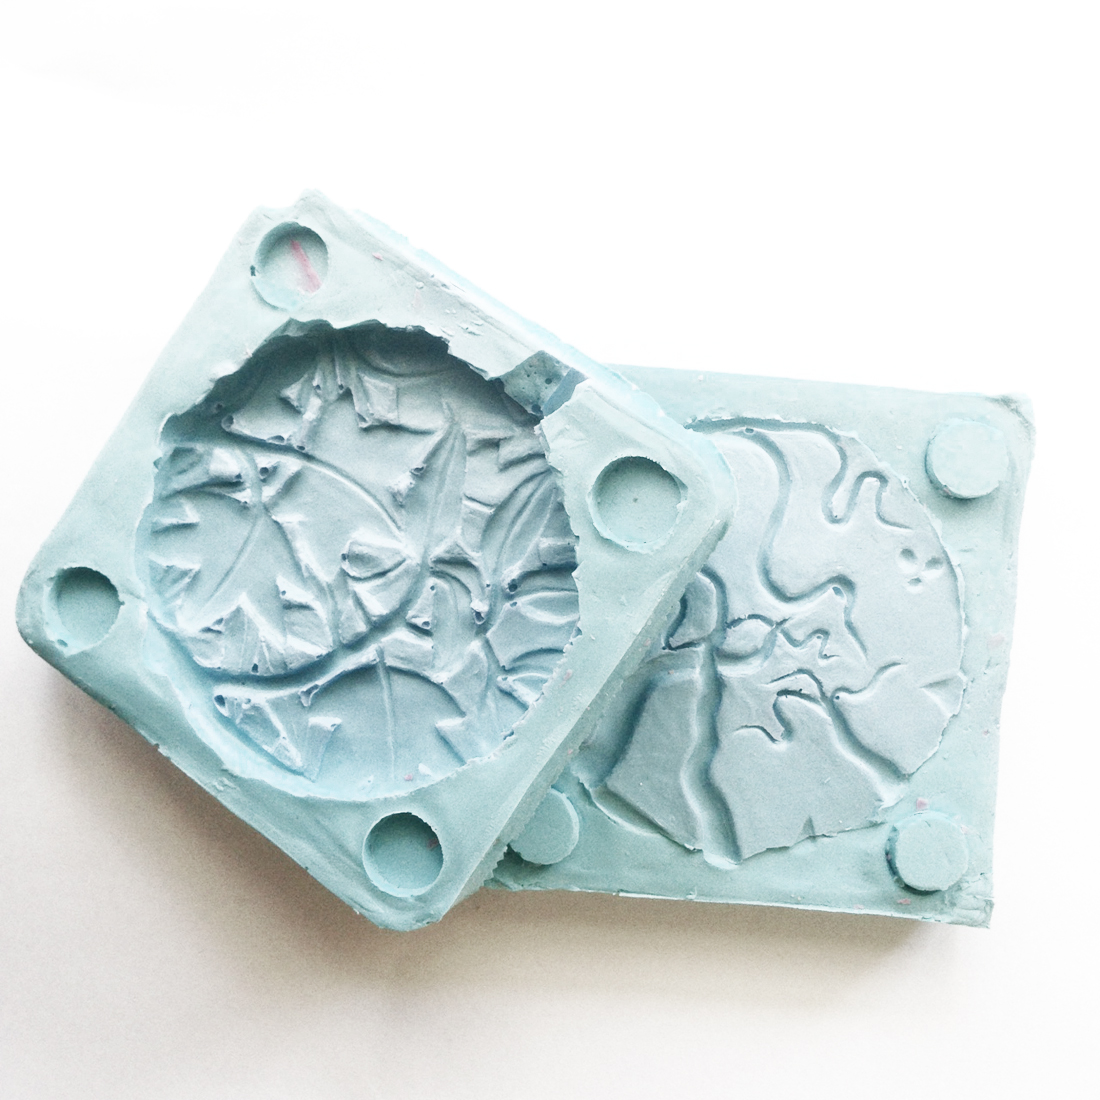 Silicon mould for creating wax reproductions